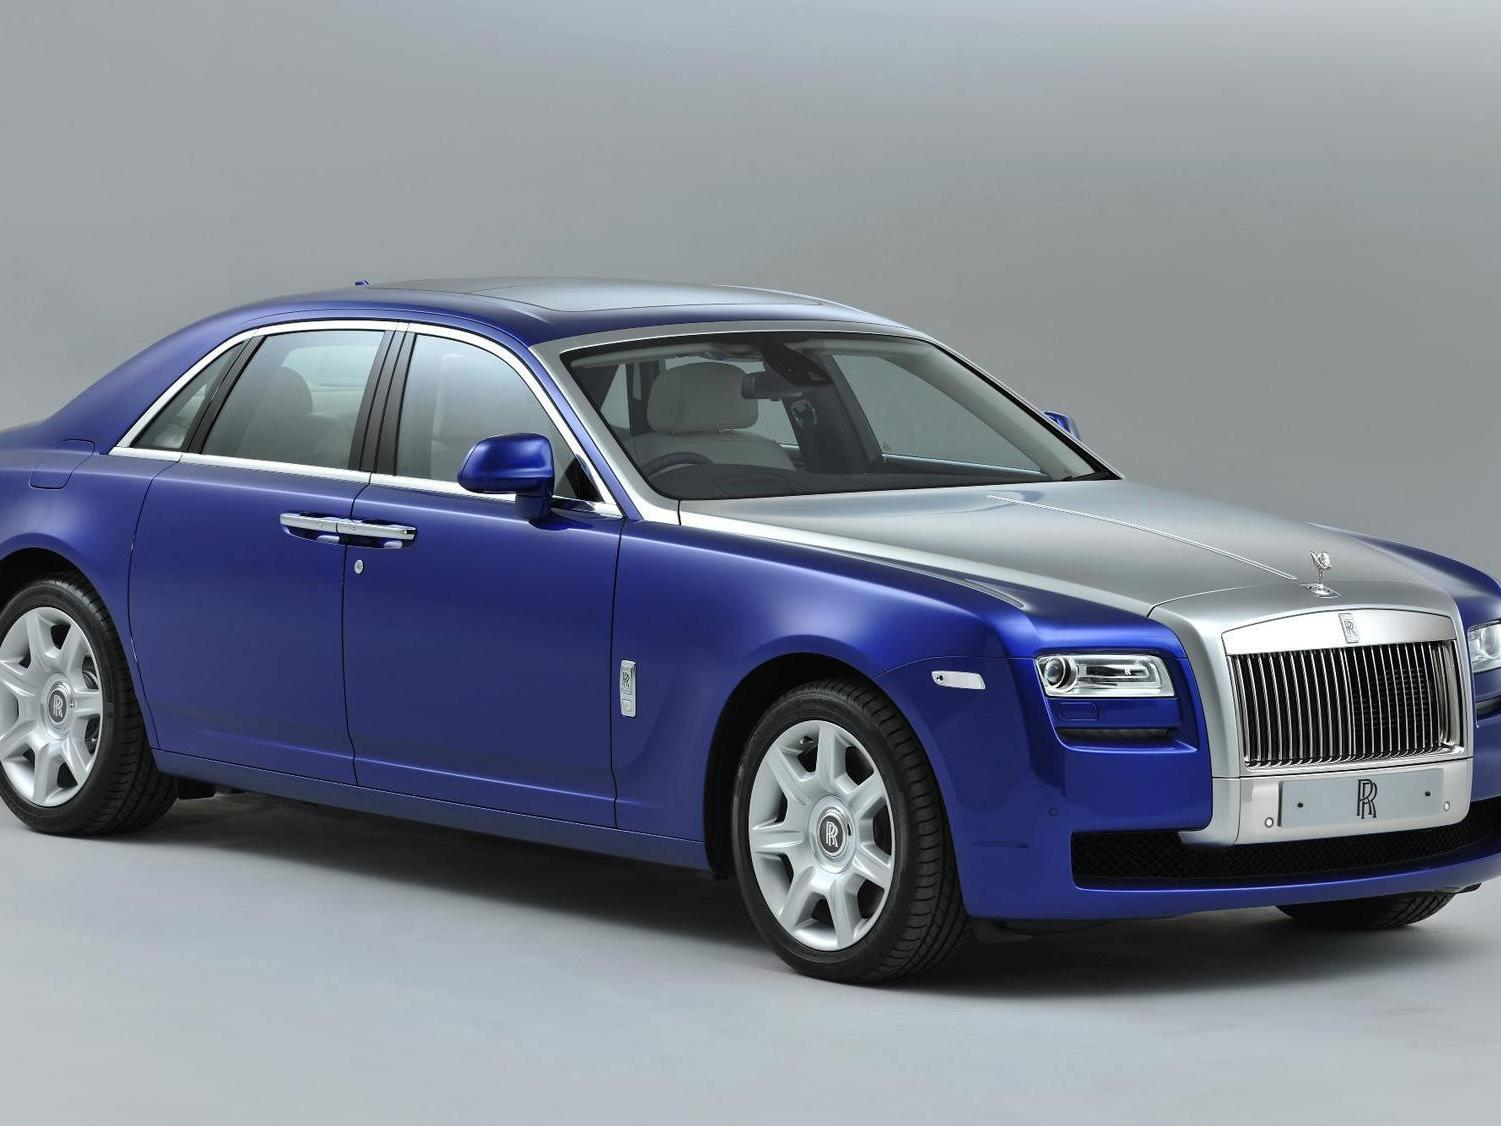 Driver of £250,000 Rolls Royce which had not had MOT for FOUR YEARS stopped by police